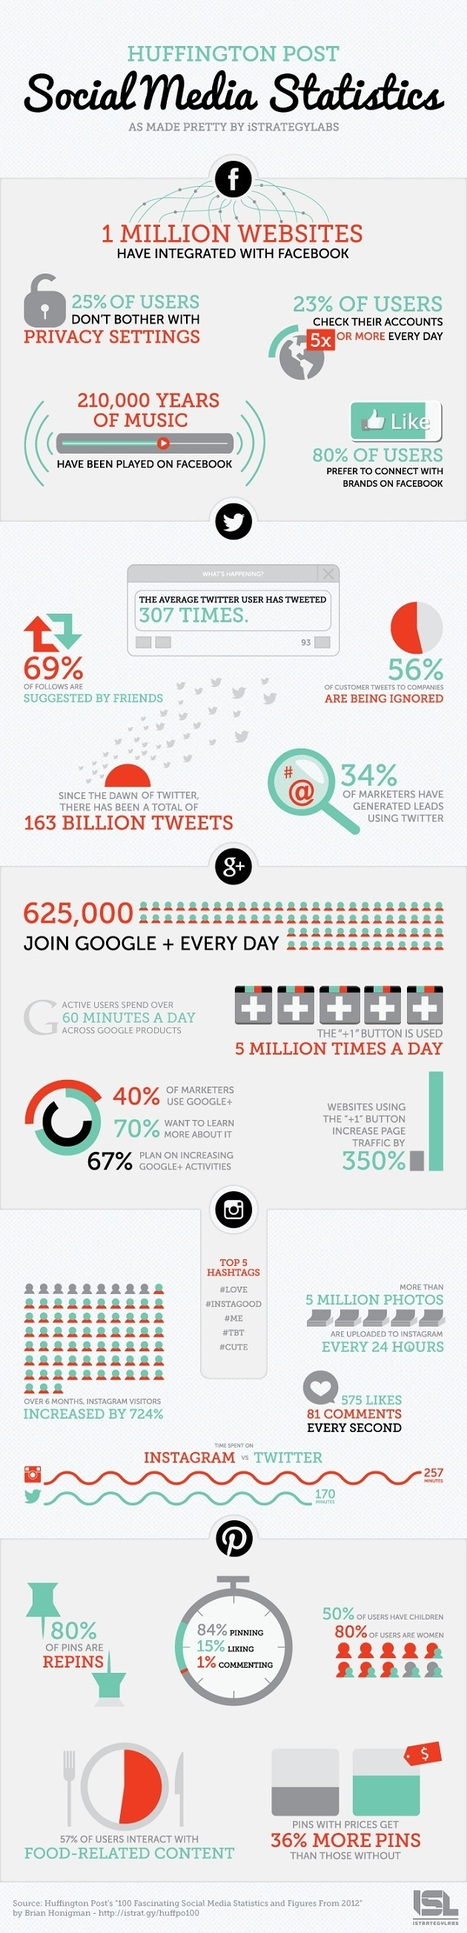 Infographic: 365 Days of Social Media | MarketingHits | Scoop.it